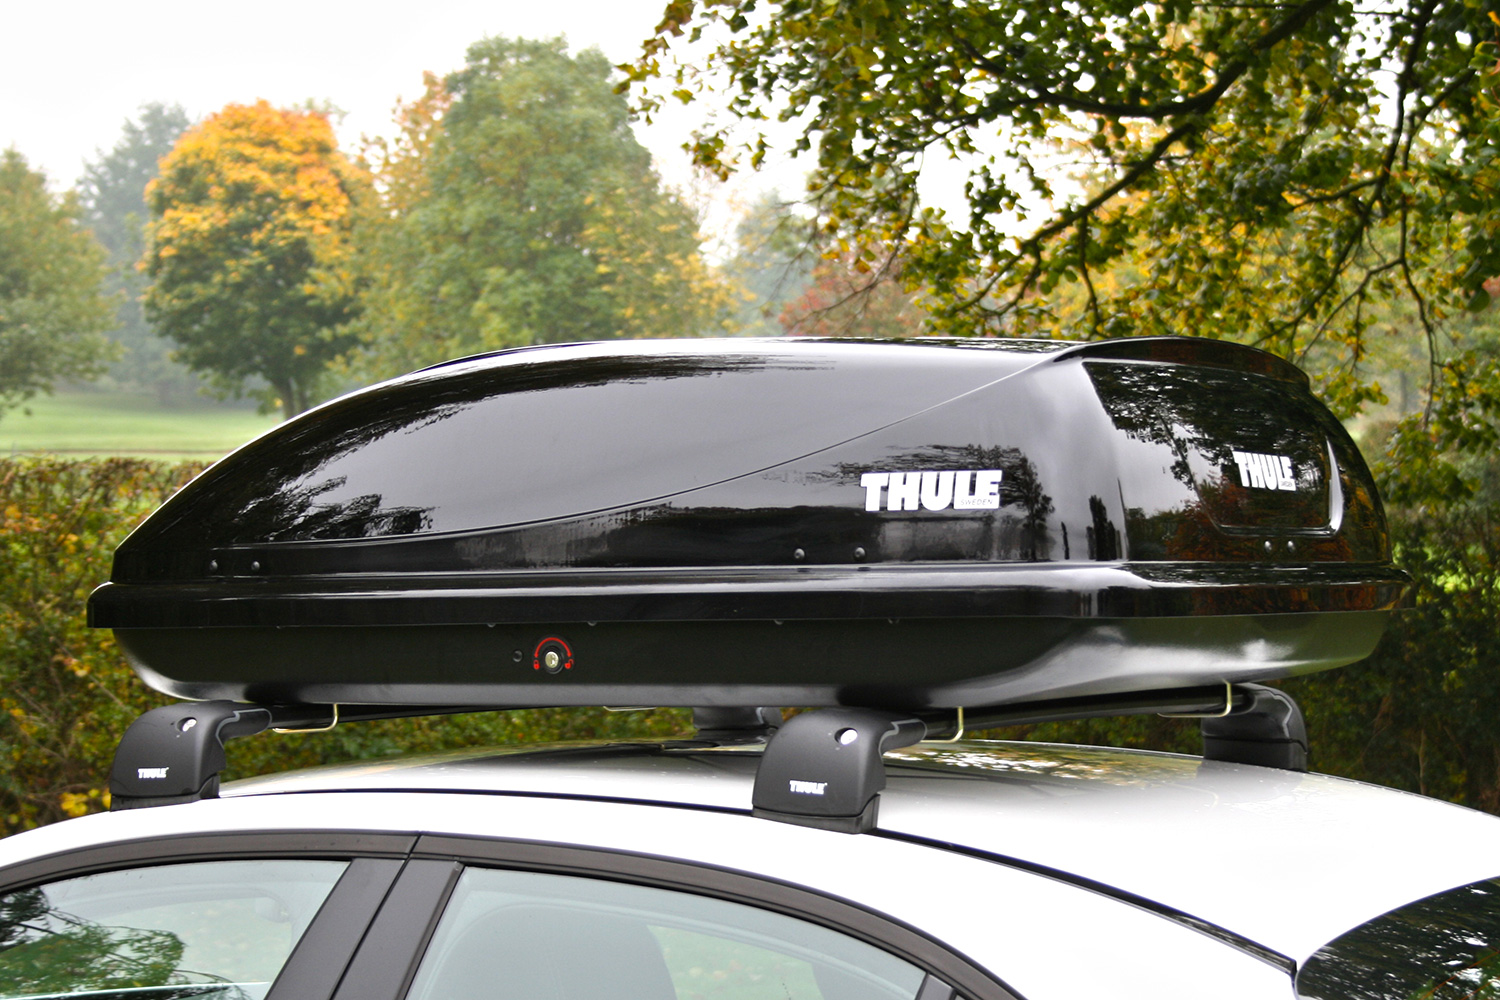 thule ocean 100 roof box. Black Bedroom Furniture Sets. Home Design Ideas